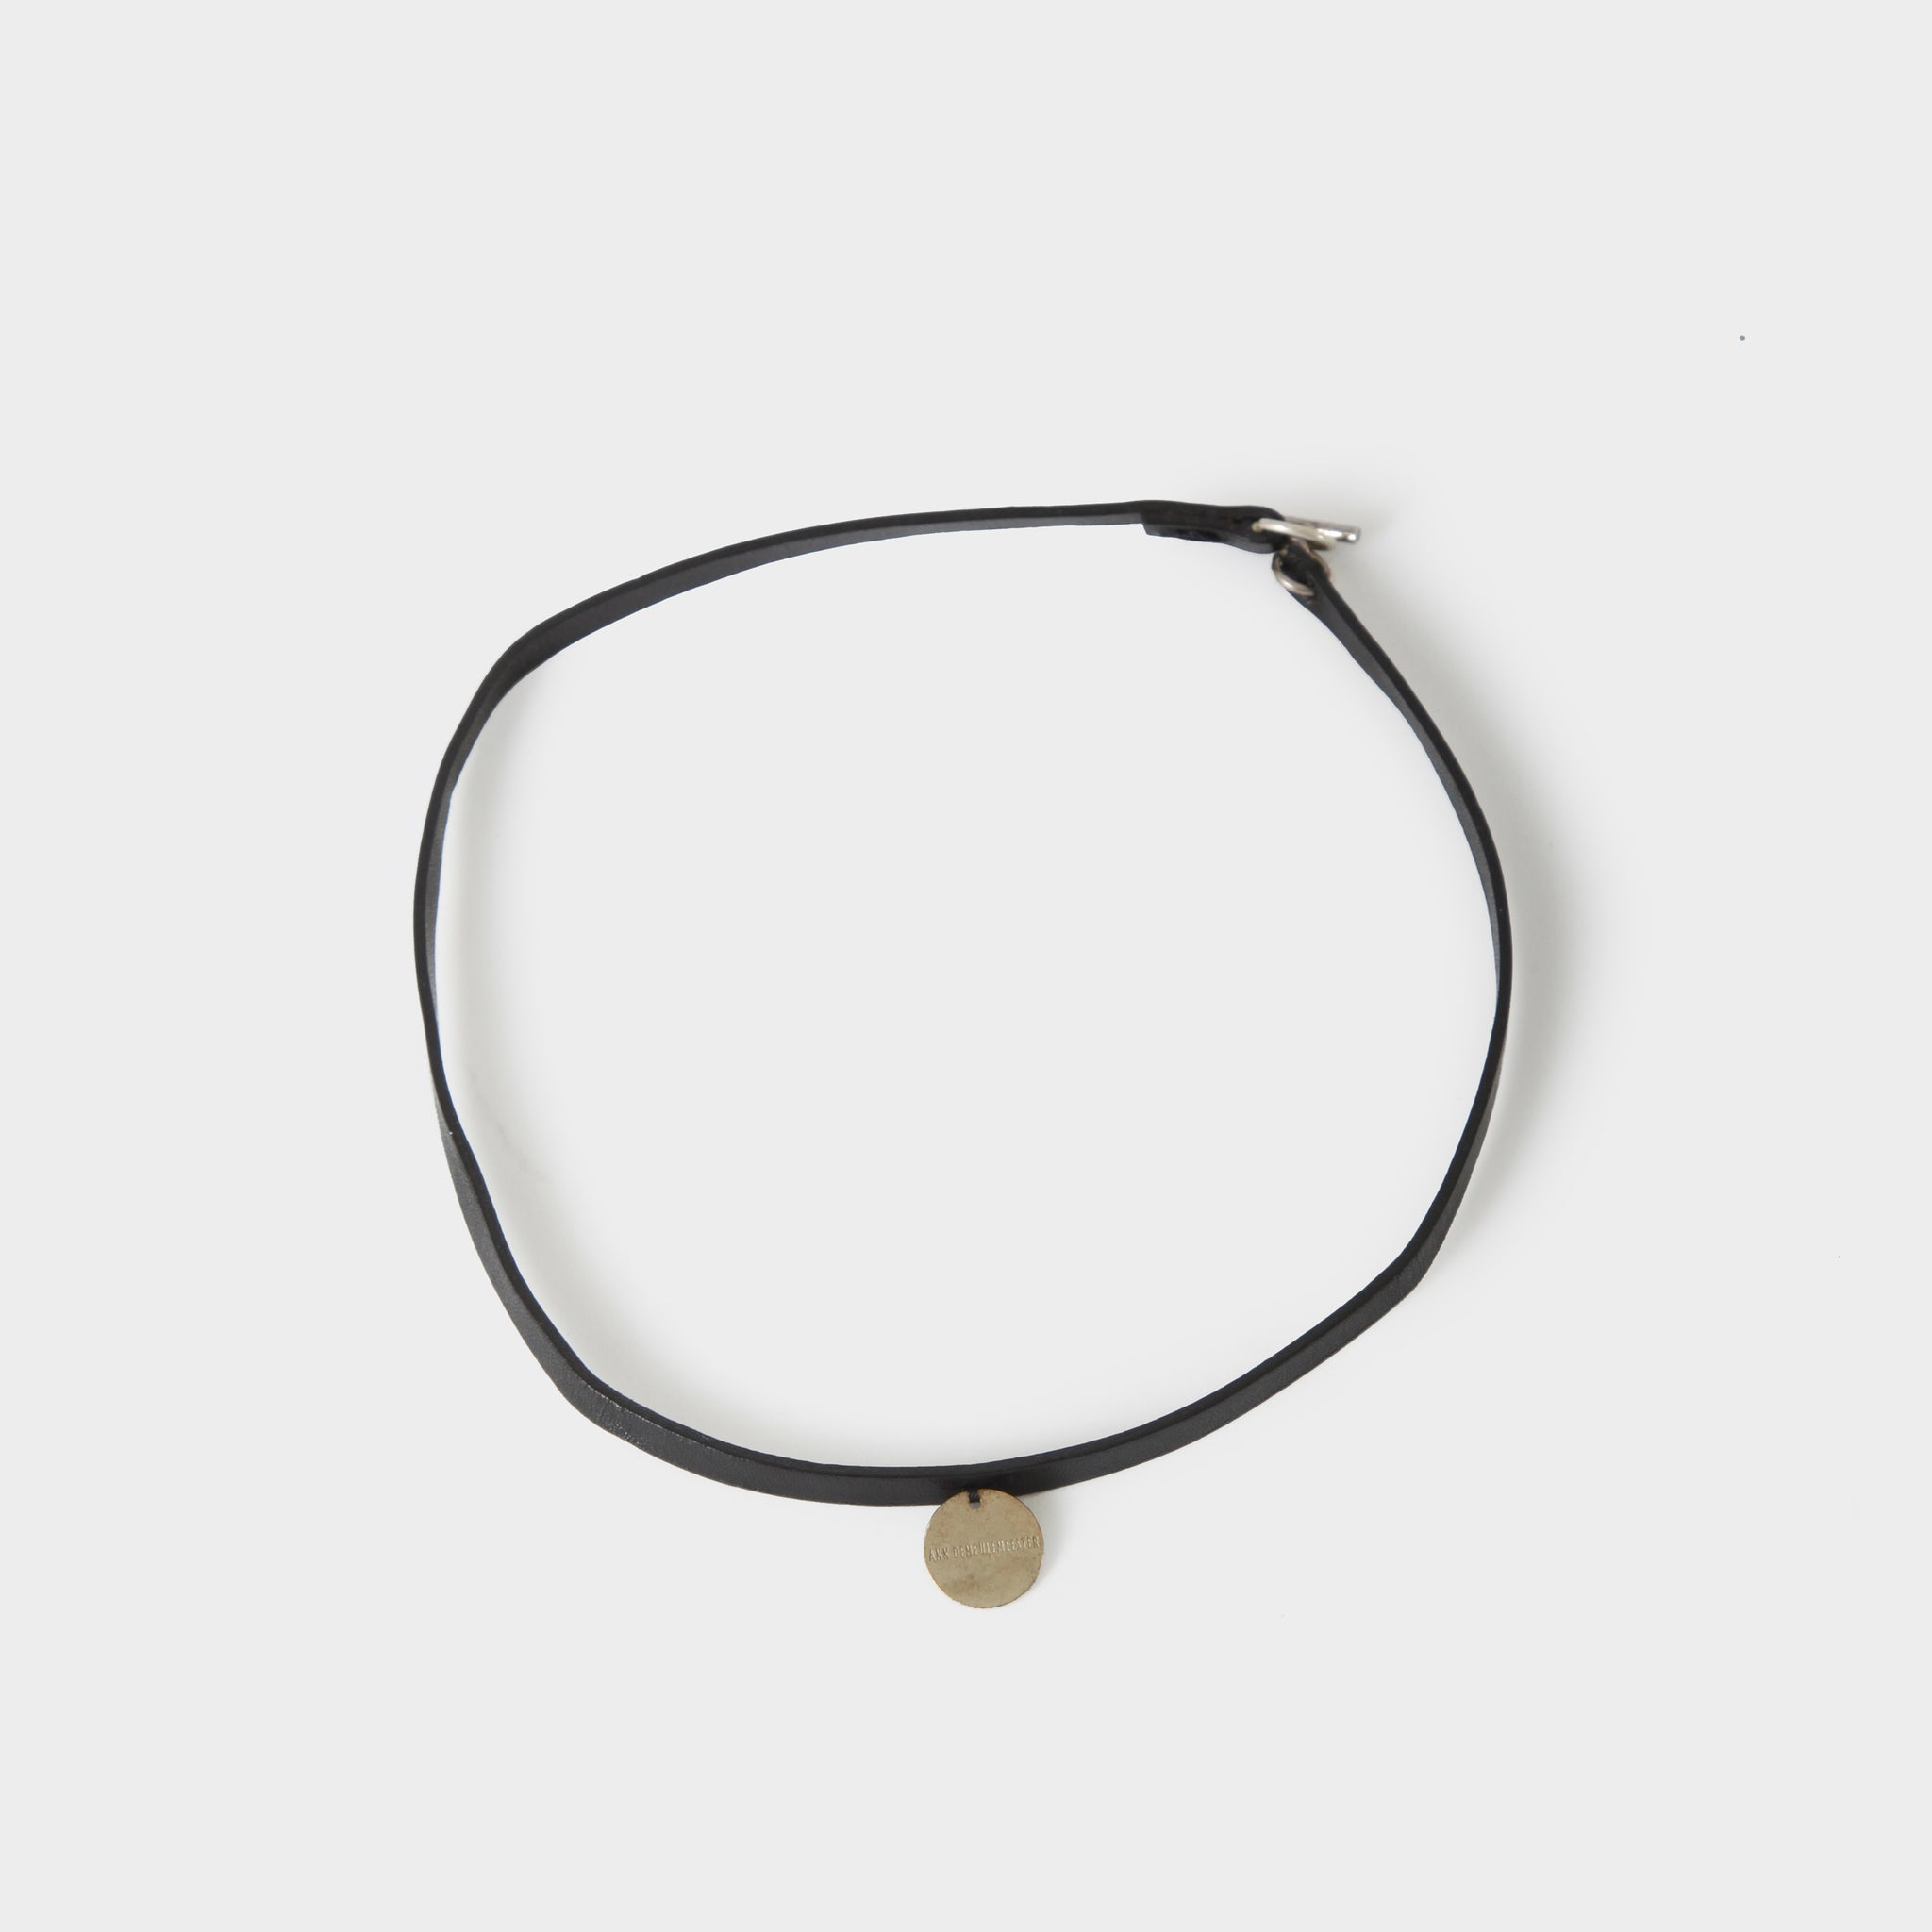 Ann Demeulemeester Leather Choker